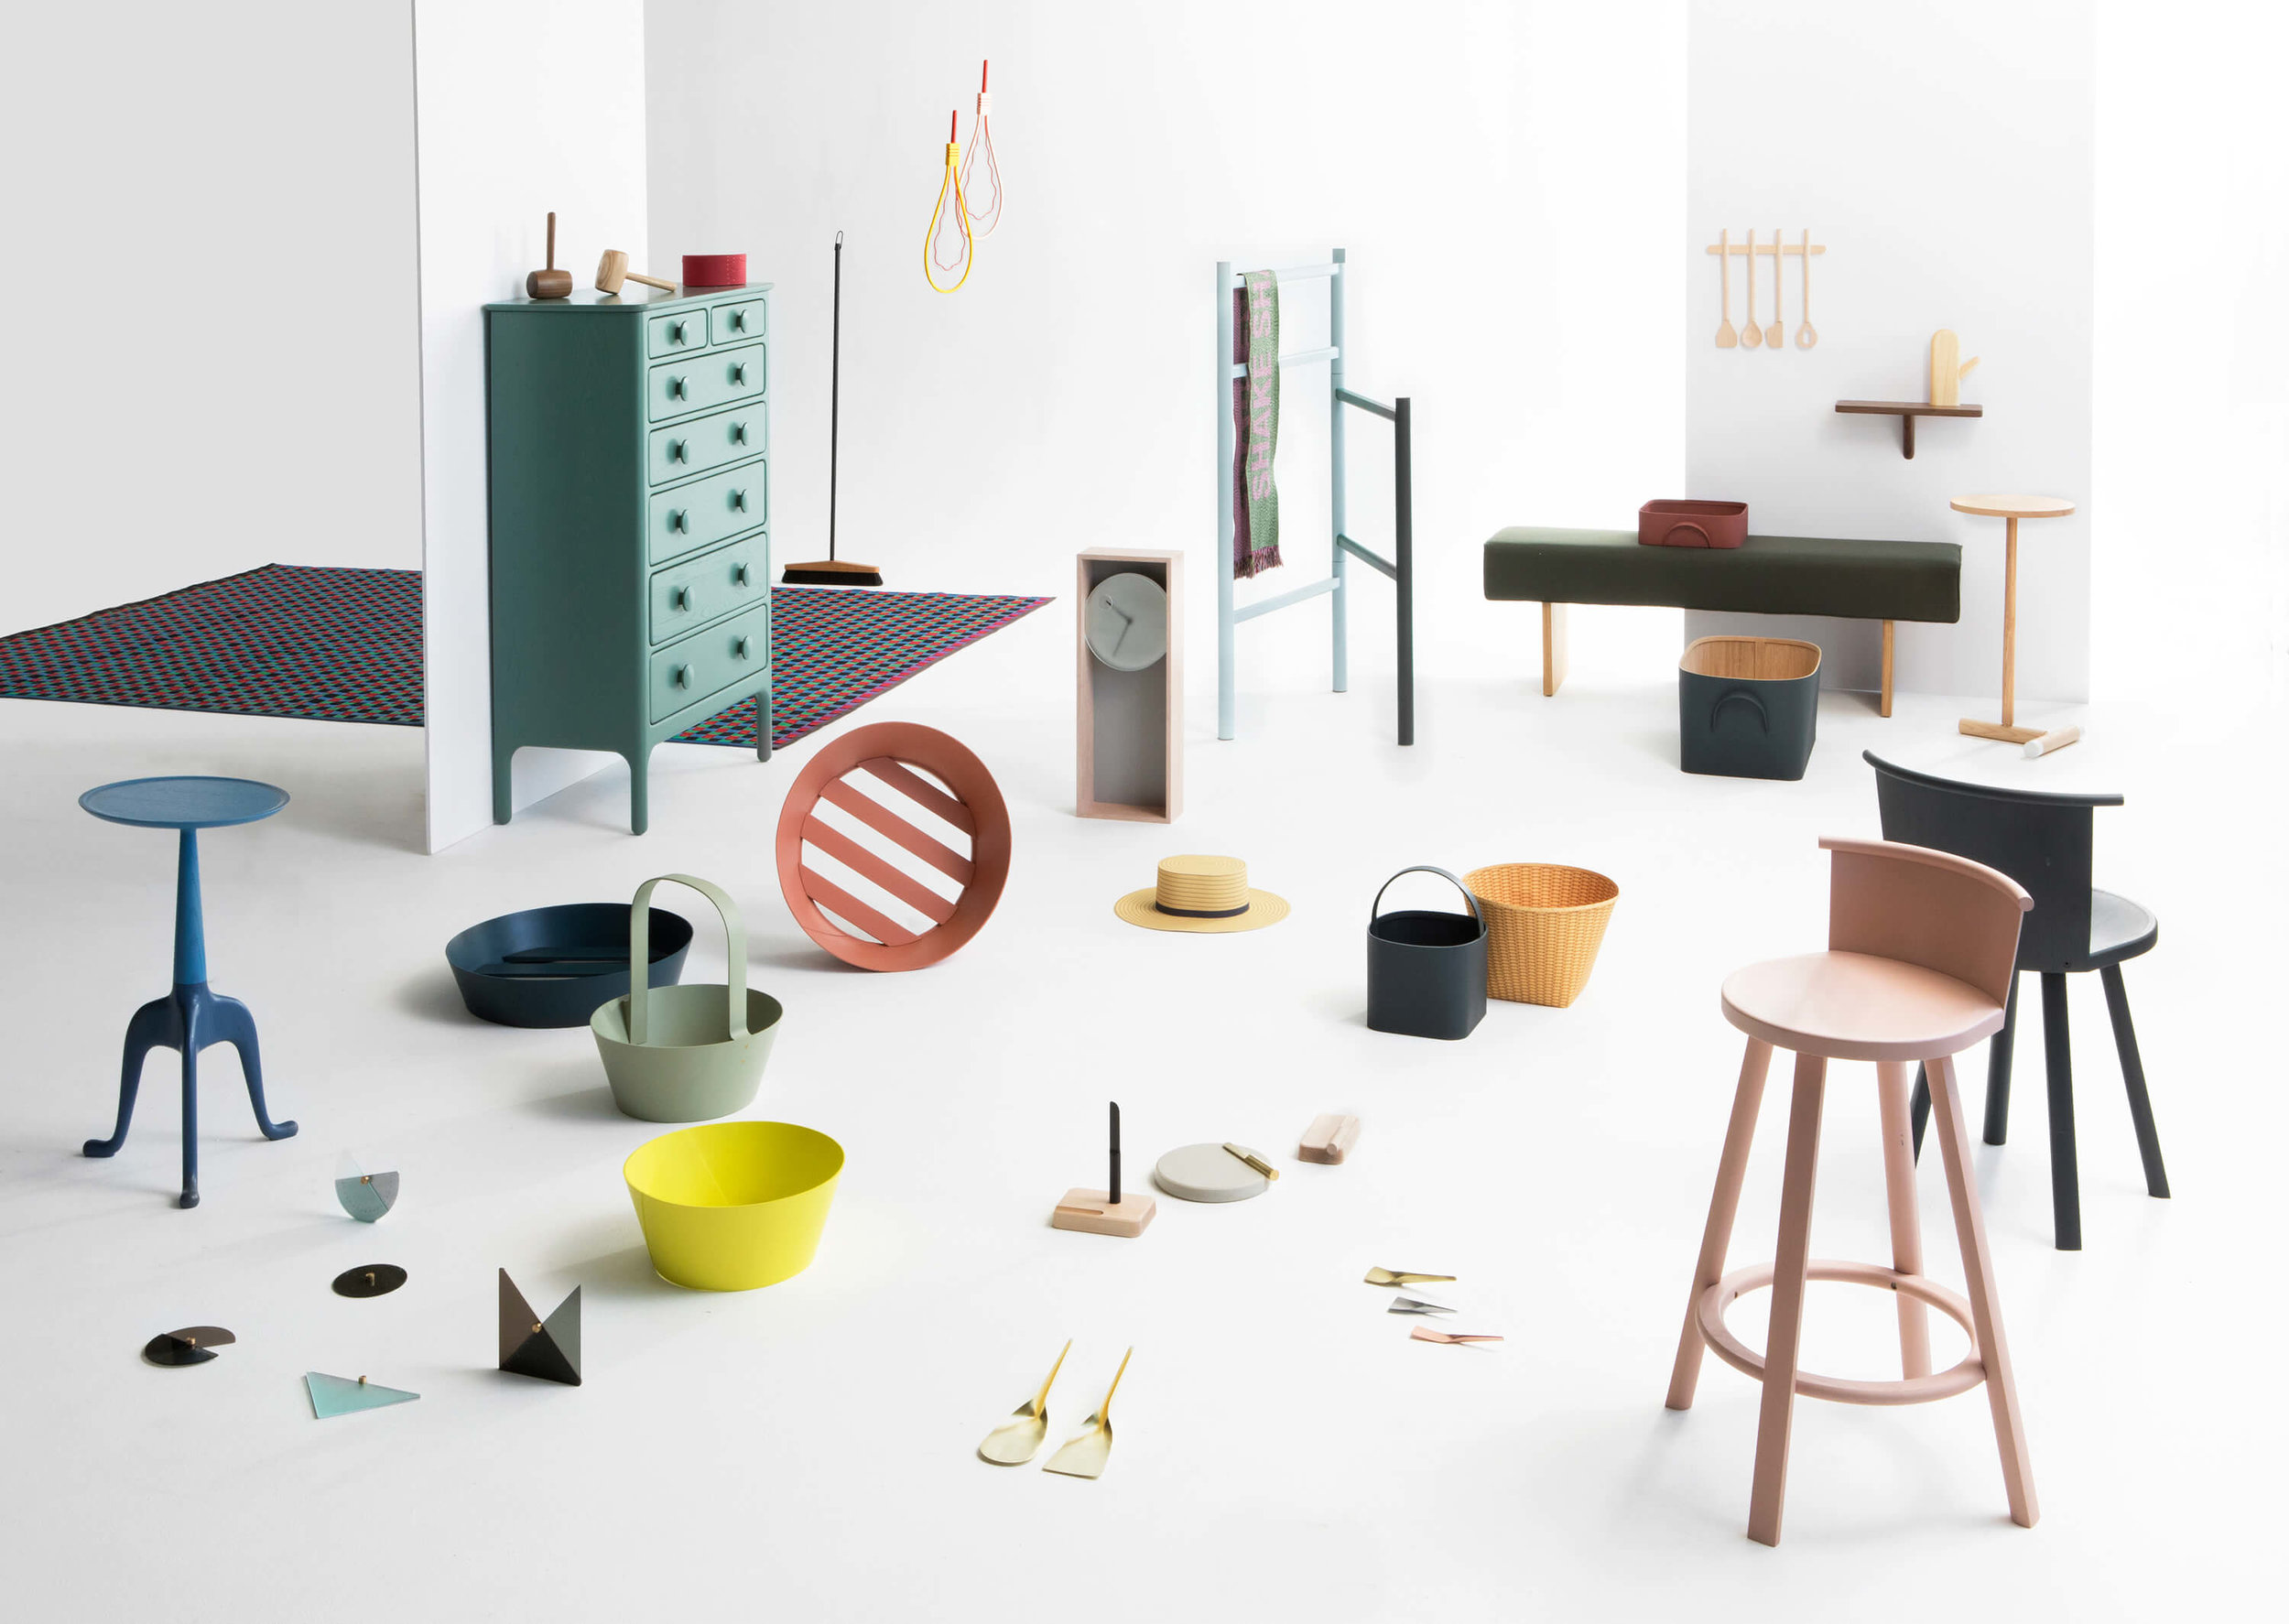 Shaker Now: Furnishing Utopia Exhibition at New York Design Week in Design Within Reach Soho Studio (May 2017)